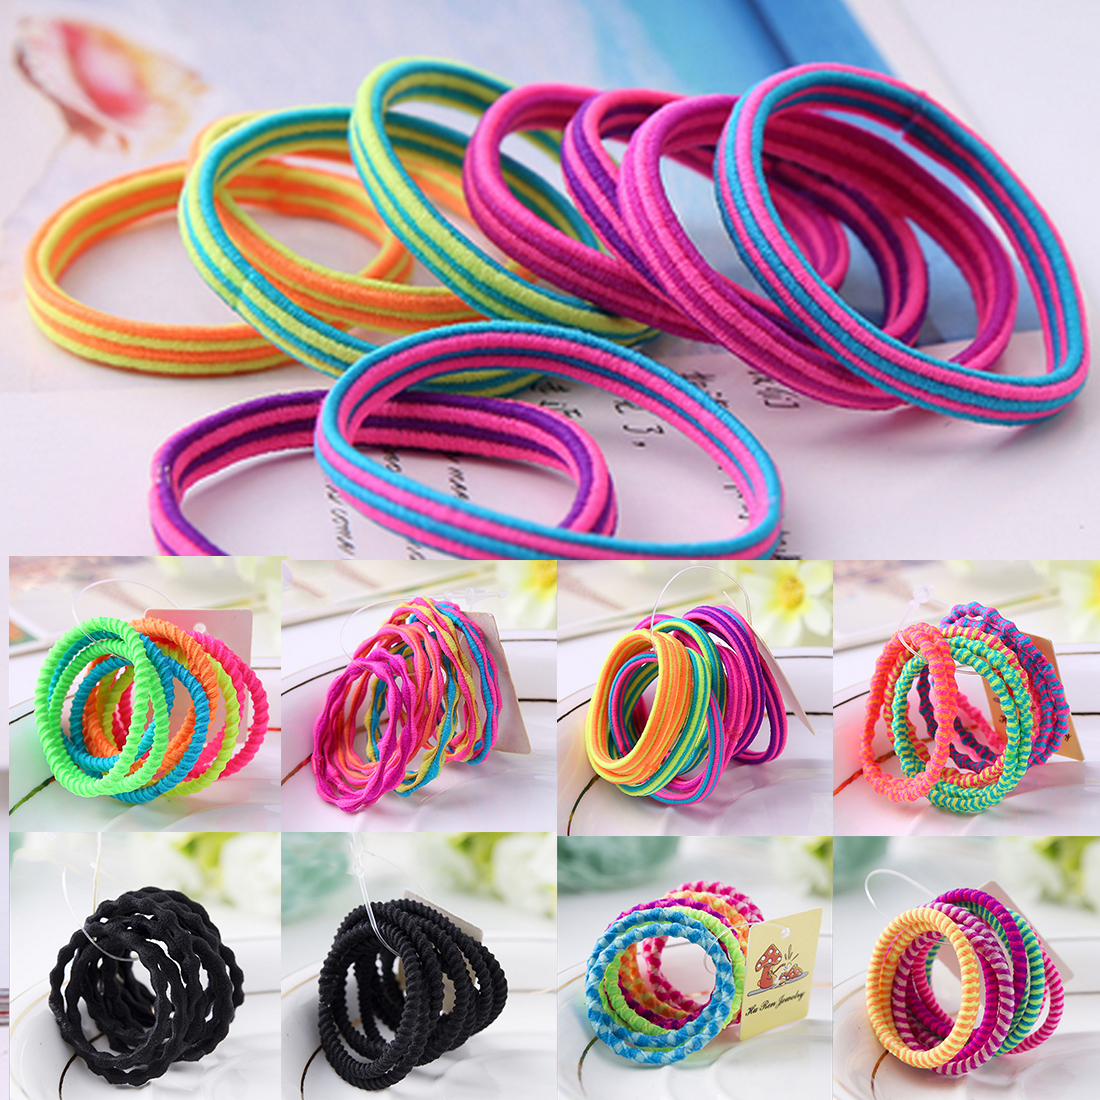 10PCS/Lot Girls Hairband Colorful Elastic Hair Band Lovely Hair Ropes Ponytail Holder Headwear Hair Accessories Candy Color 2015 fashion elastic hair bands for women candy color baby girl kids headbands hair ropes headwear hair accessories 20 colors